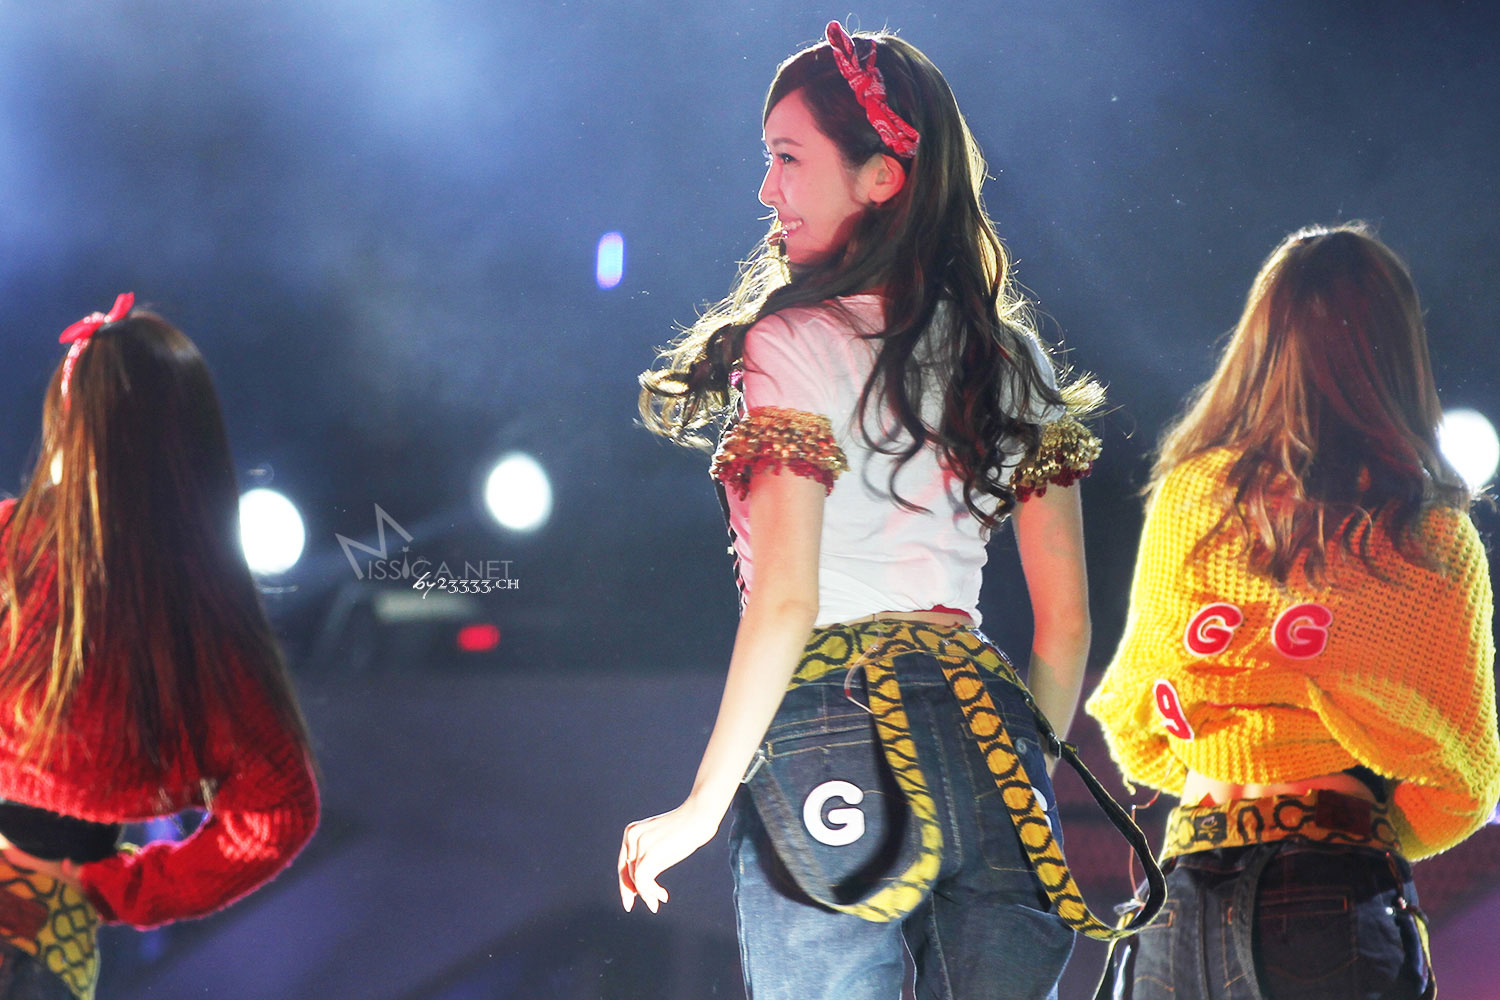 jessica smtown live in beijing 2013 snsd pics